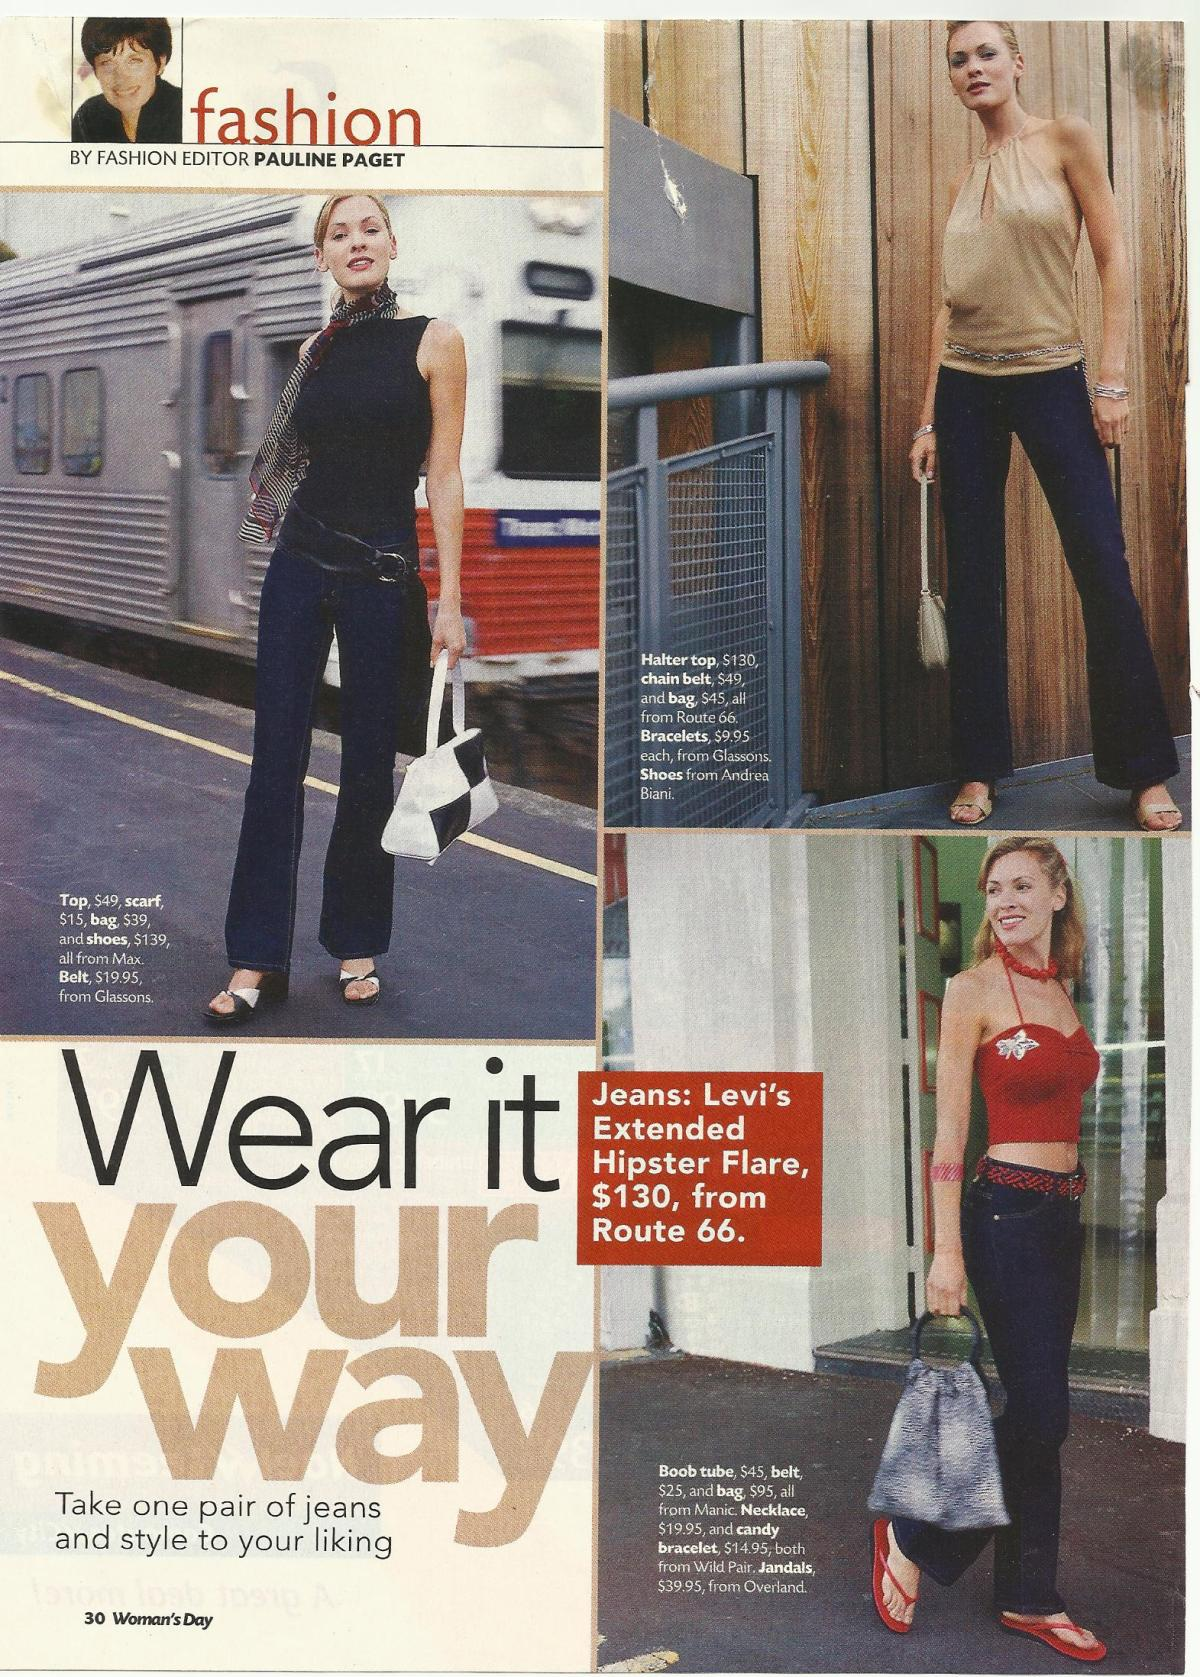 Women's Day fashion spread